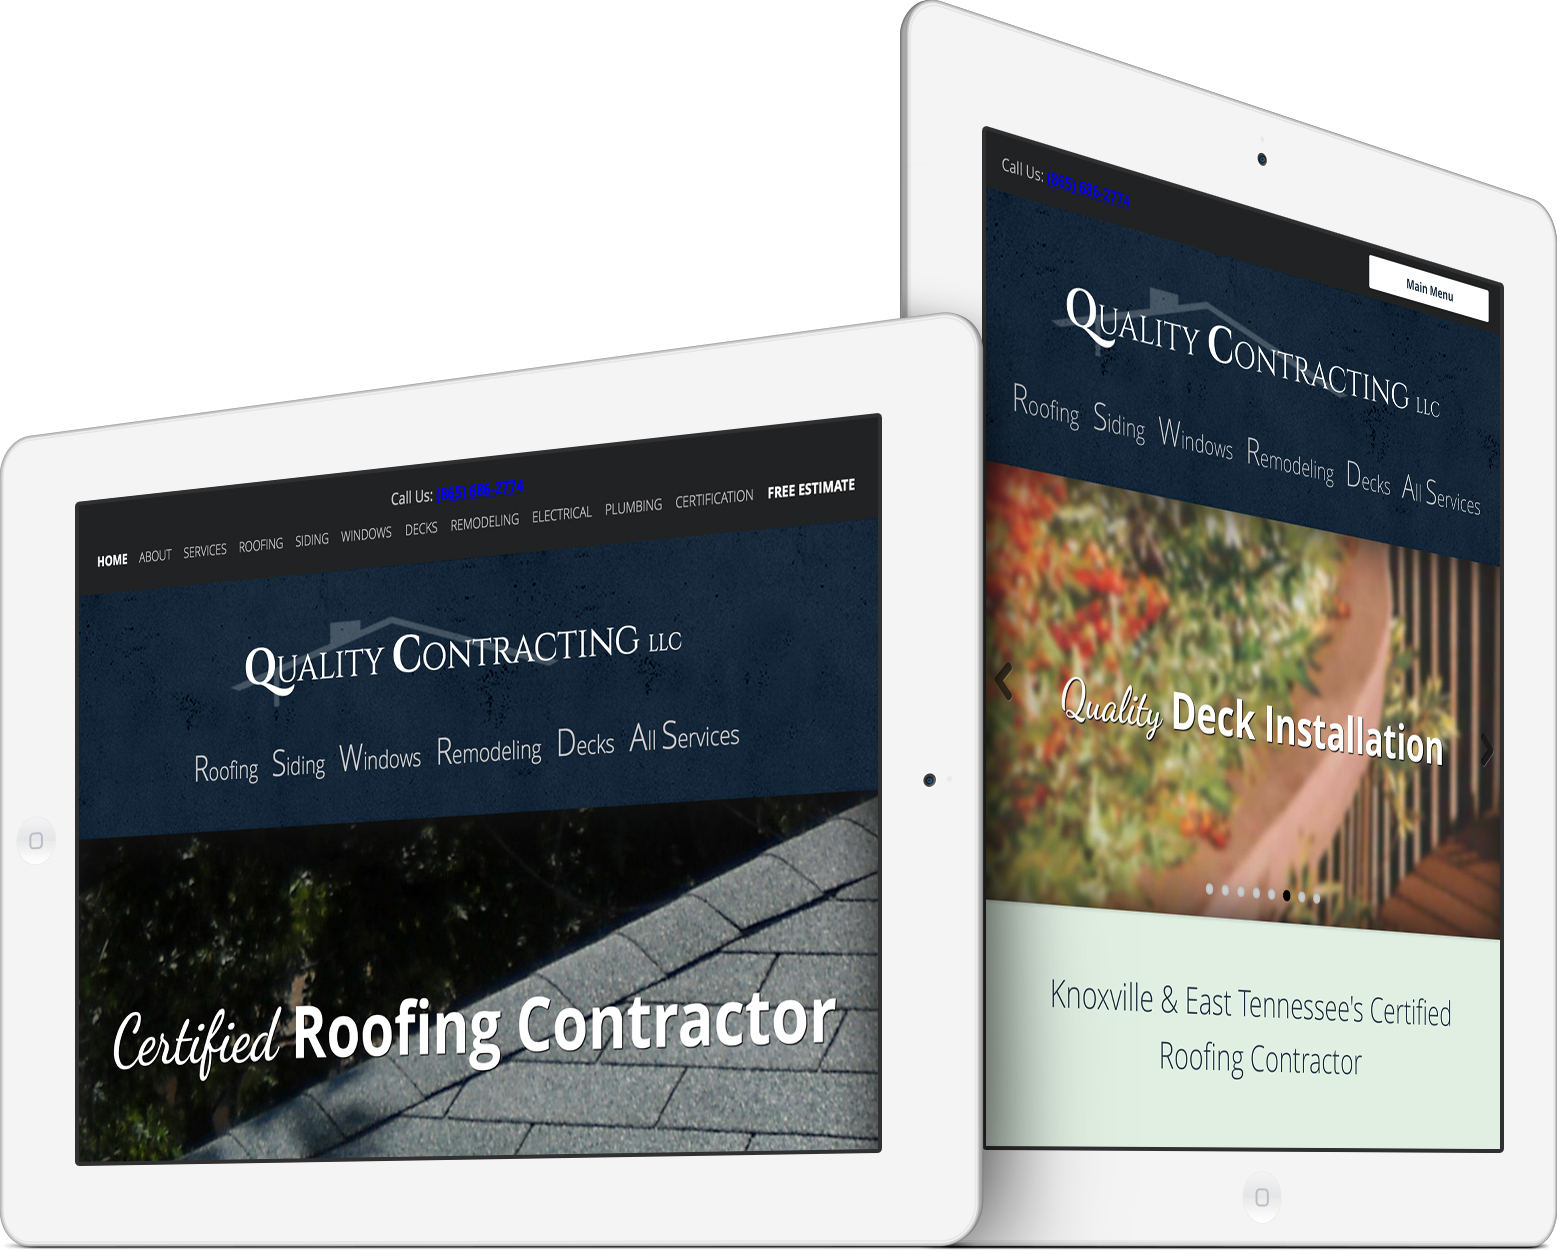 Quality Contracting LLC on an iPad